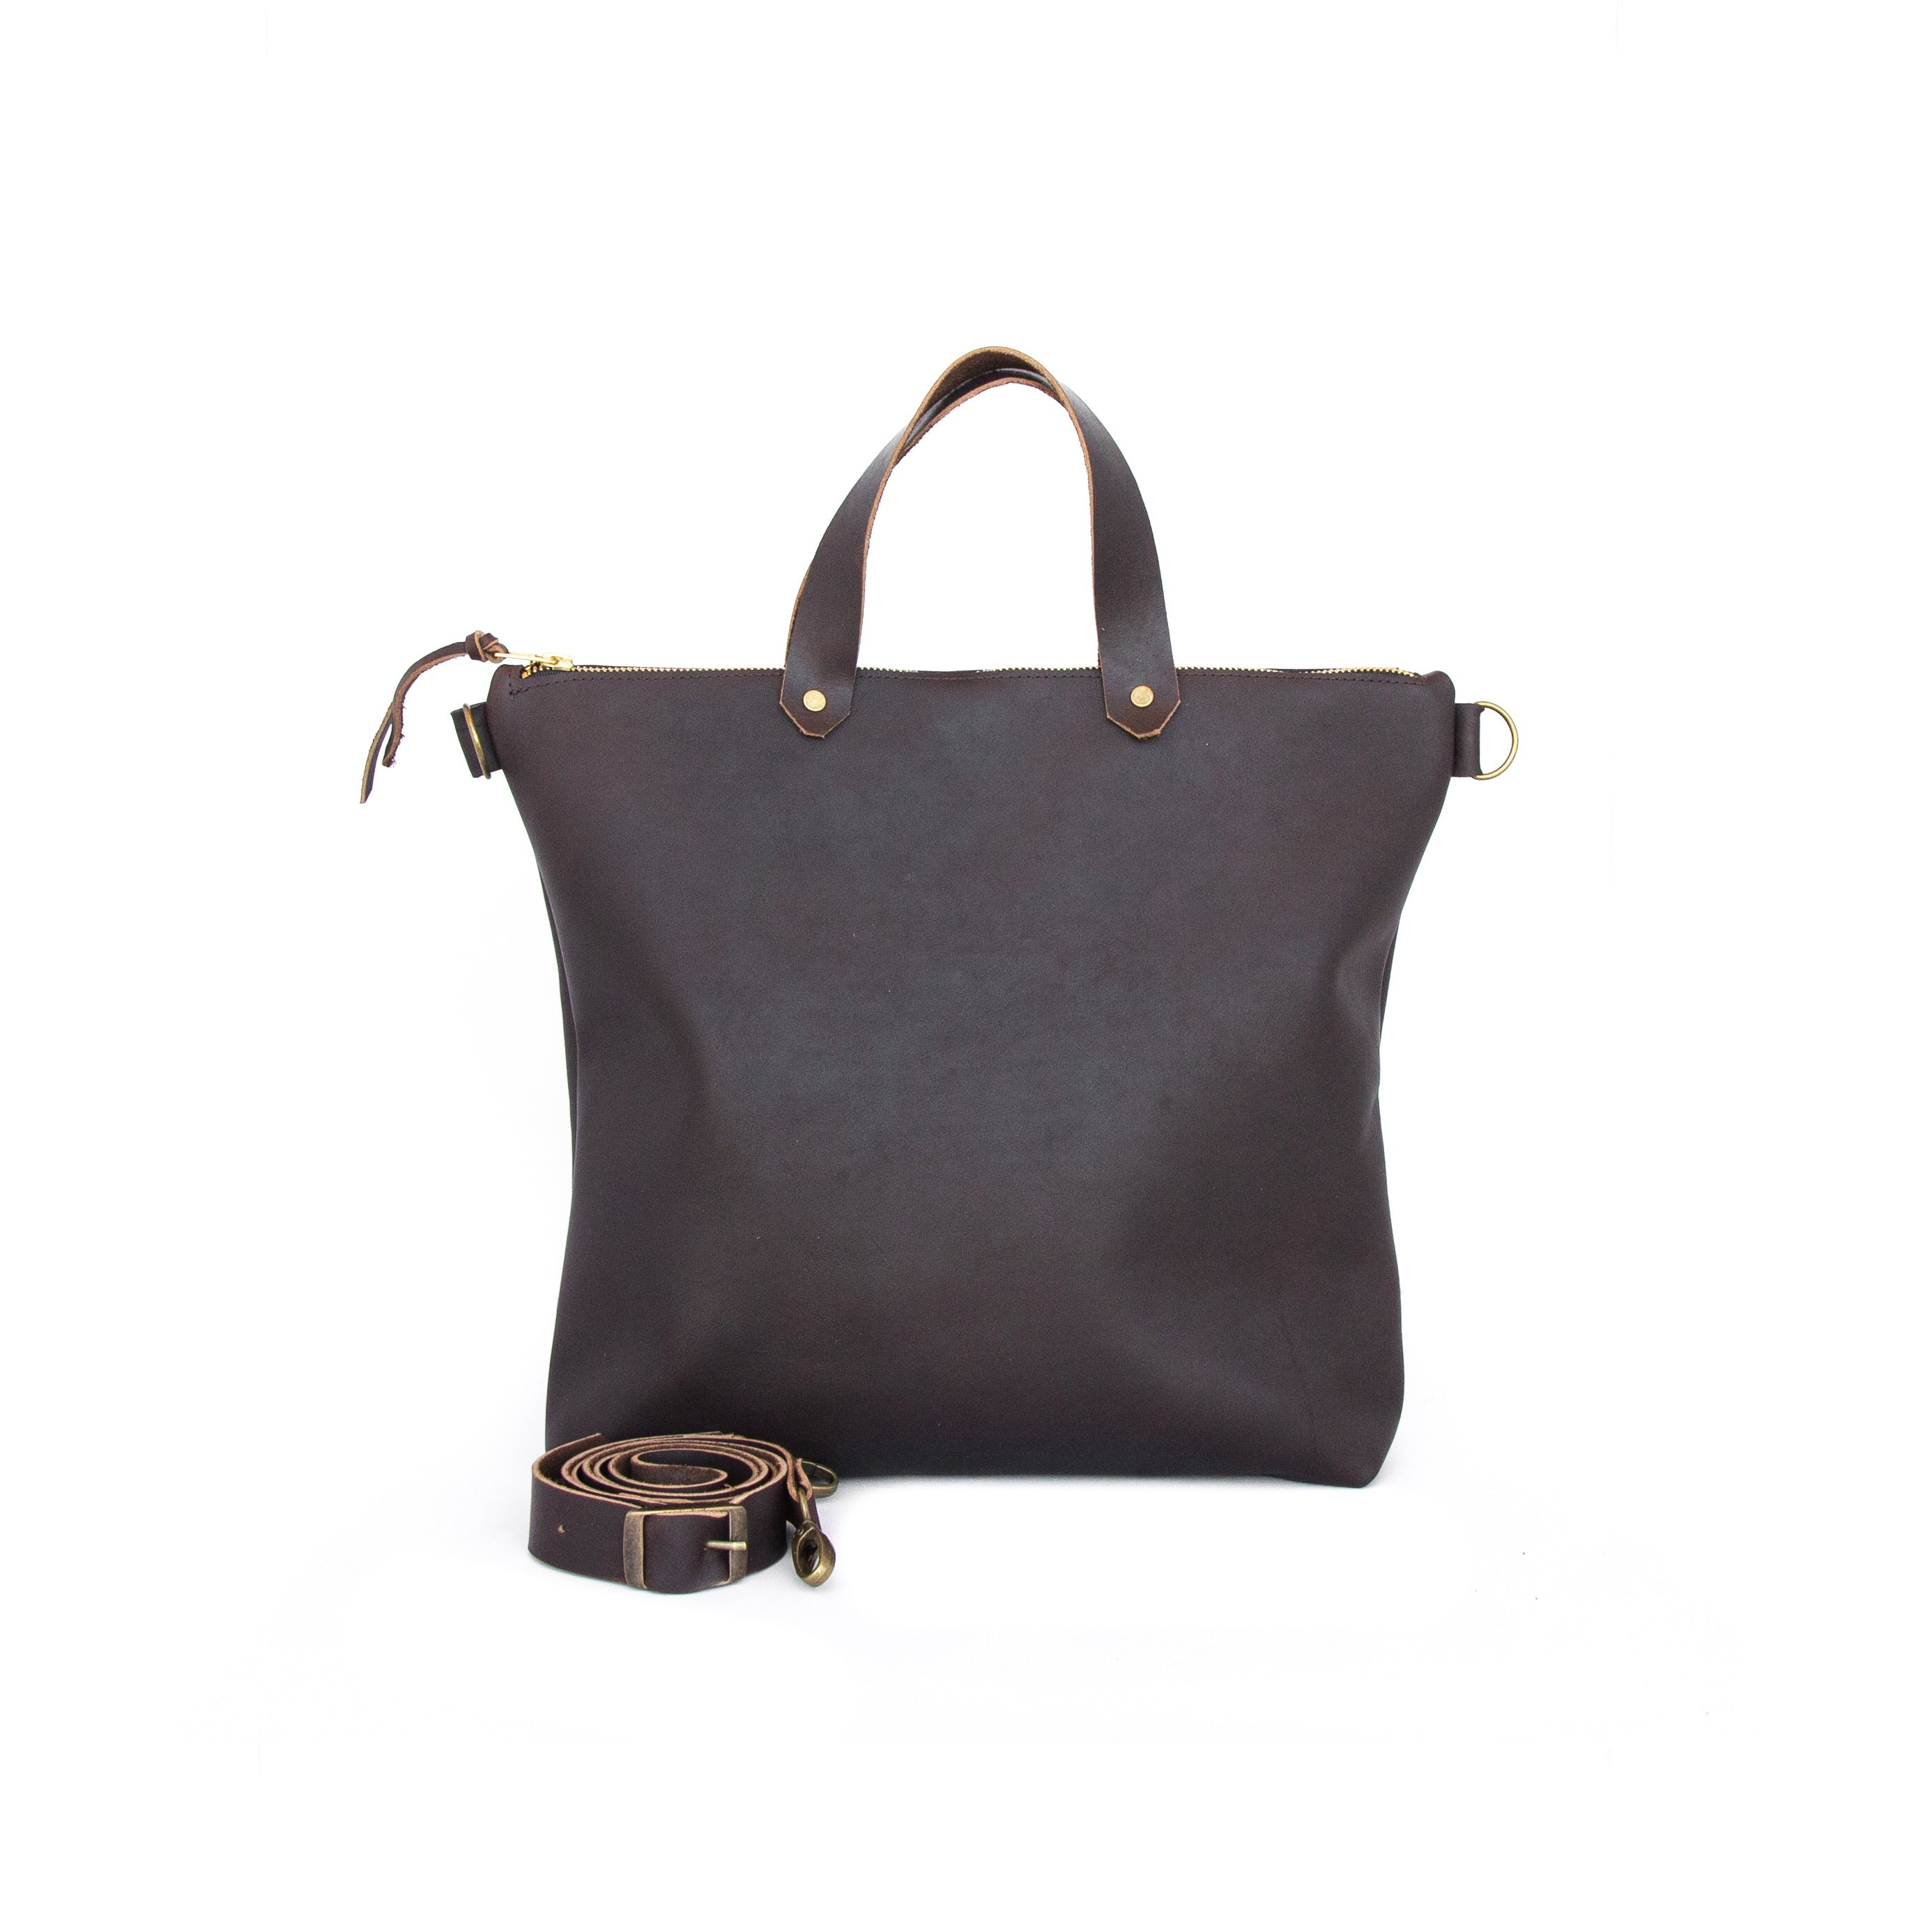 Zip Tote In Dark Brown Leather - handcrafted by Market Canvas Leather in Tofino, BC, Canada